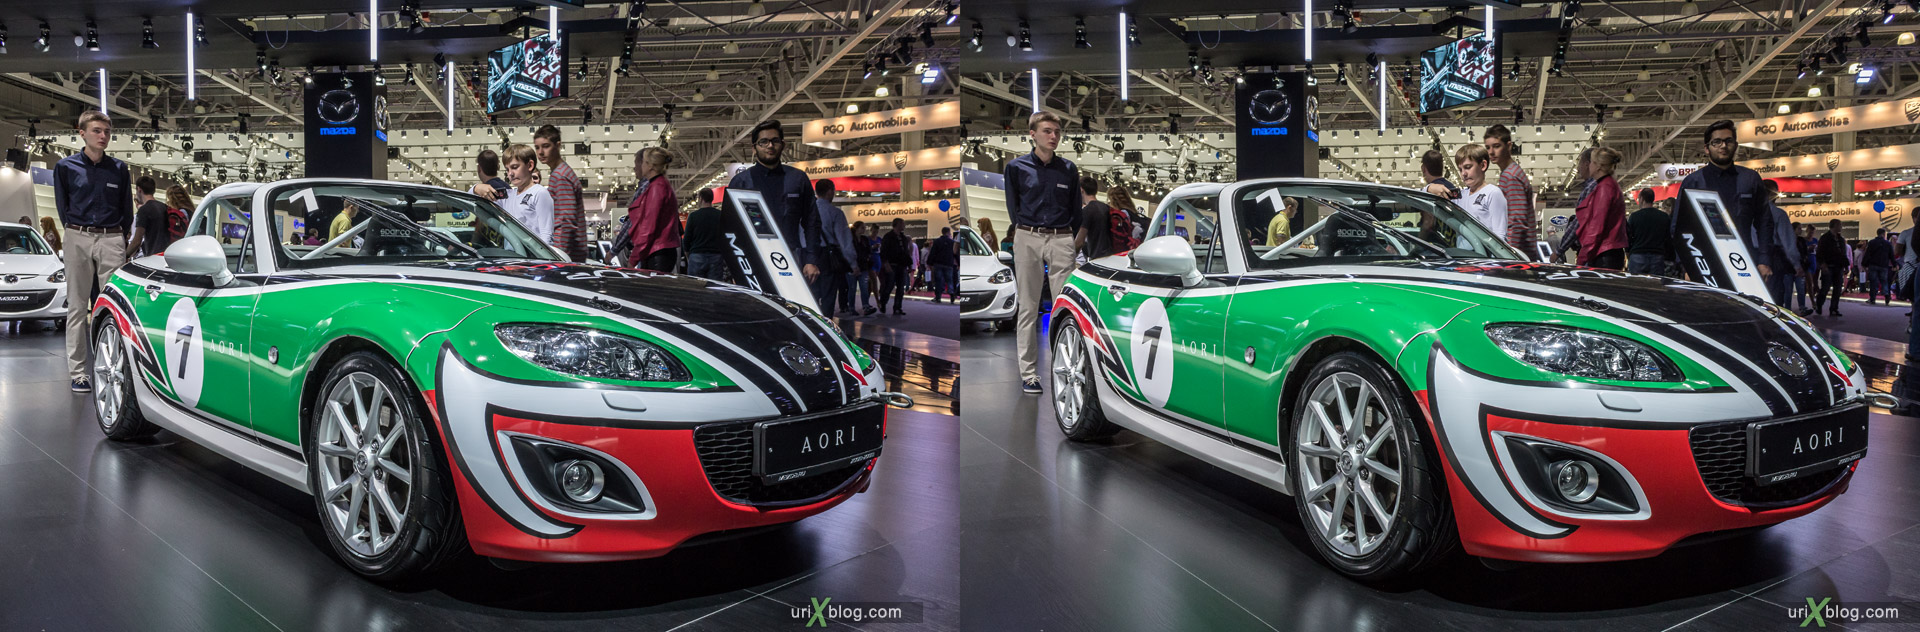 2014, Aori, Moscow International Automobile Salon, MIAS, Crocus Expo, Moscow, Russia, augest, 3D, stereo pair, cross-eyed, crossview, cross view stereo pair, stereoscopic